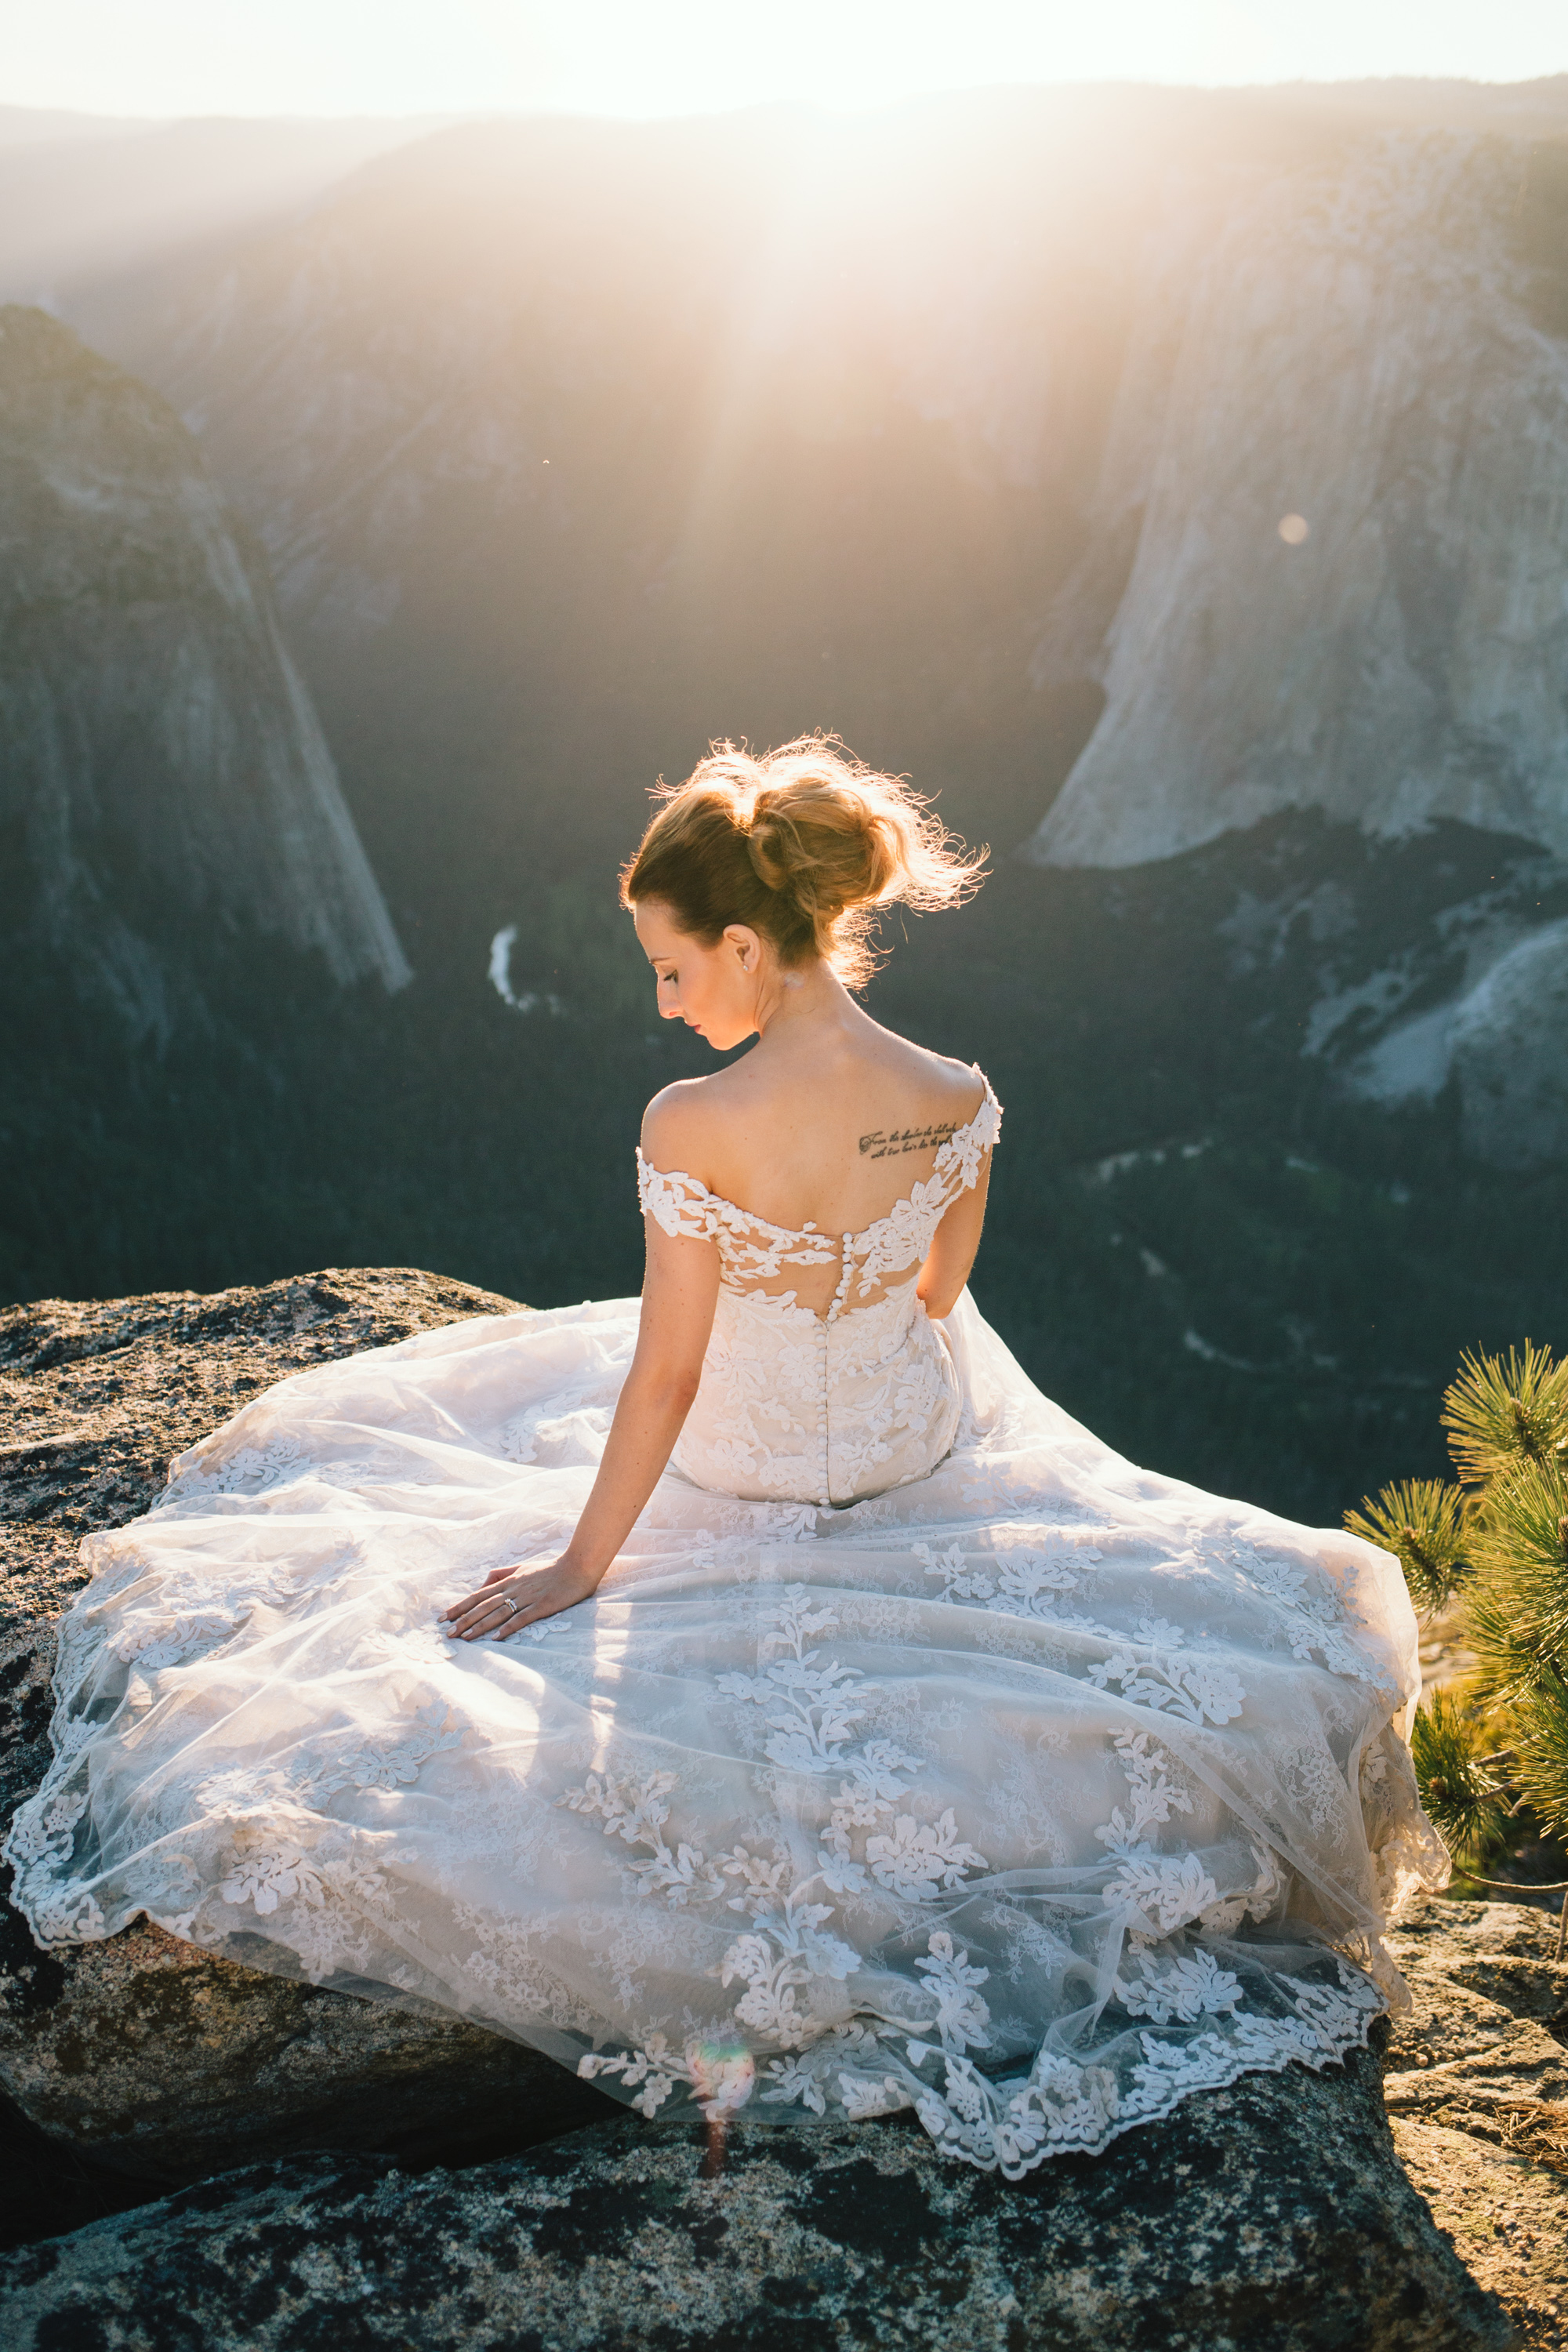 yosemite-adventure-wedding-amyjames (12).jpg